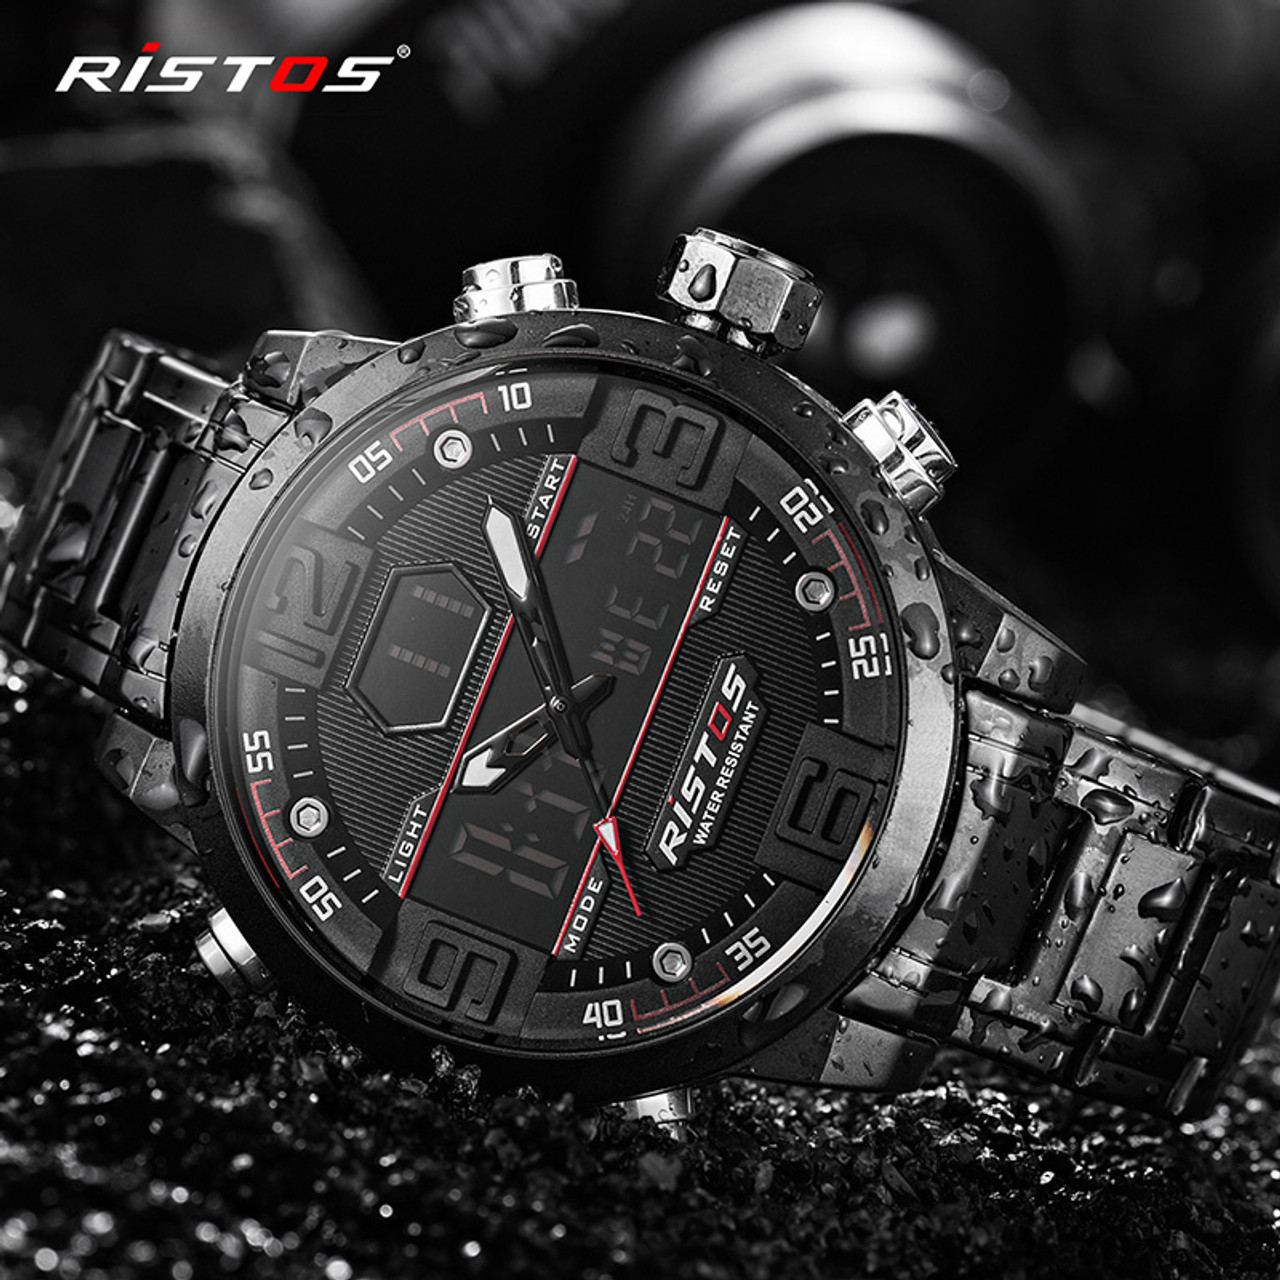 b4b175d863cd ... RISTOS Relojes Masculino Hombre Fashion Multifunction Steel Men Sport  Watches Chronograph Digital Waterproof Wristwatch New 9338 ...